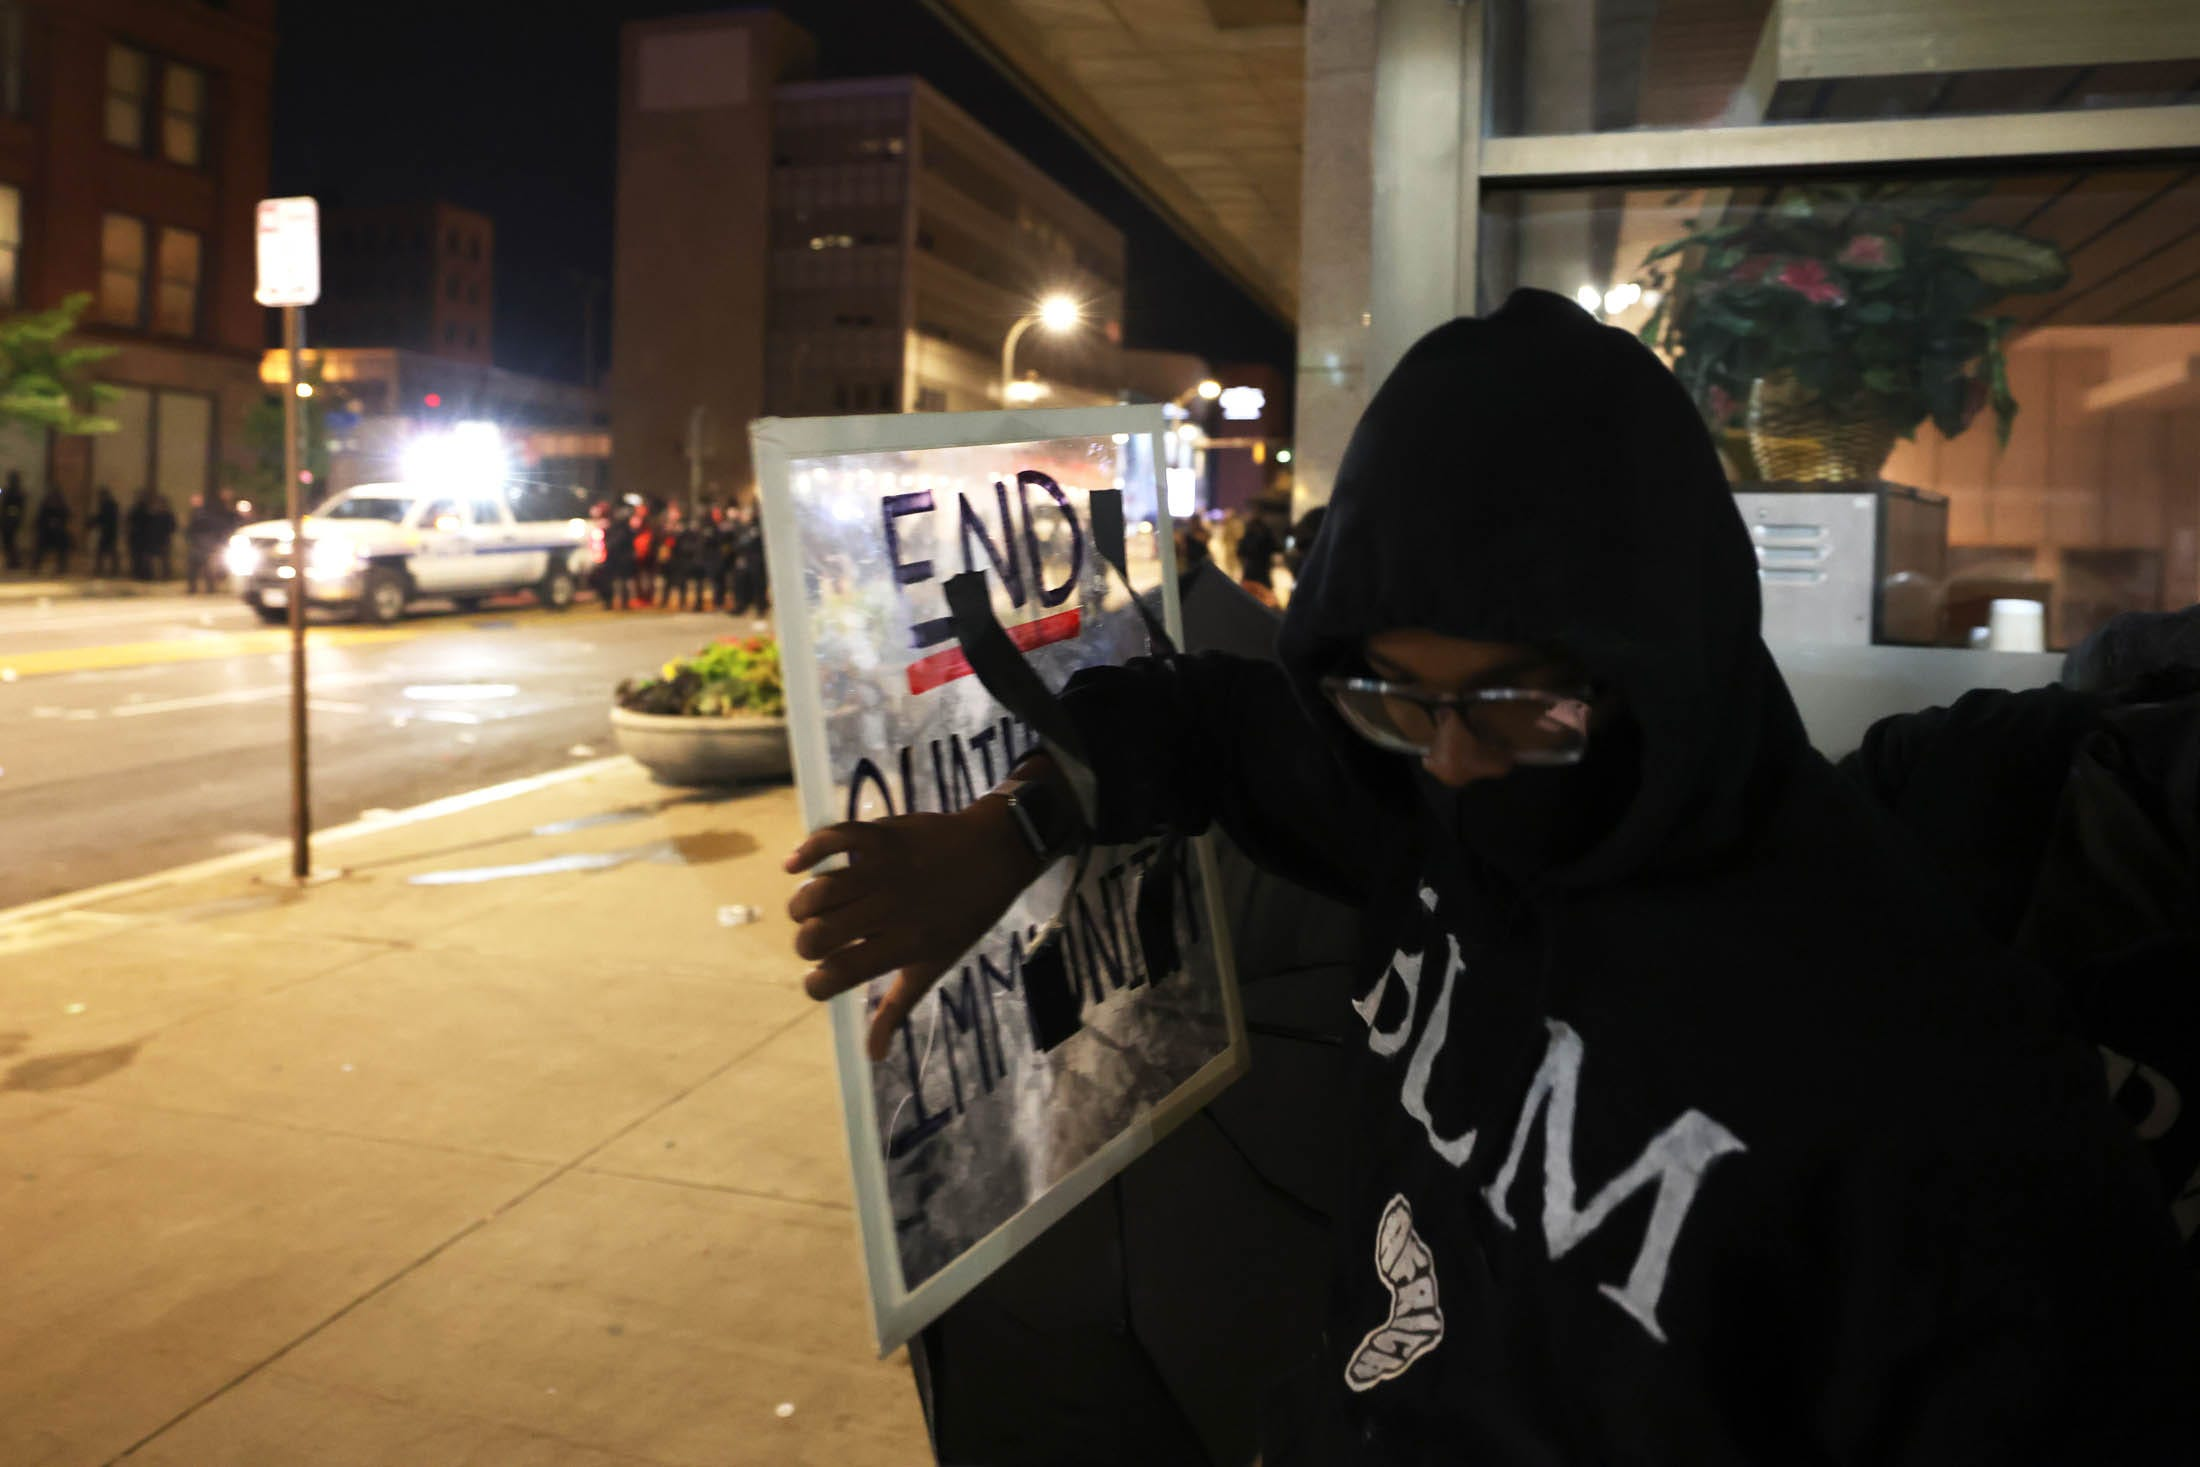 A demonstrator rallies for police reform in September 2020 in Rochester, New York, after the death of Daniel Prude at the hands of police.